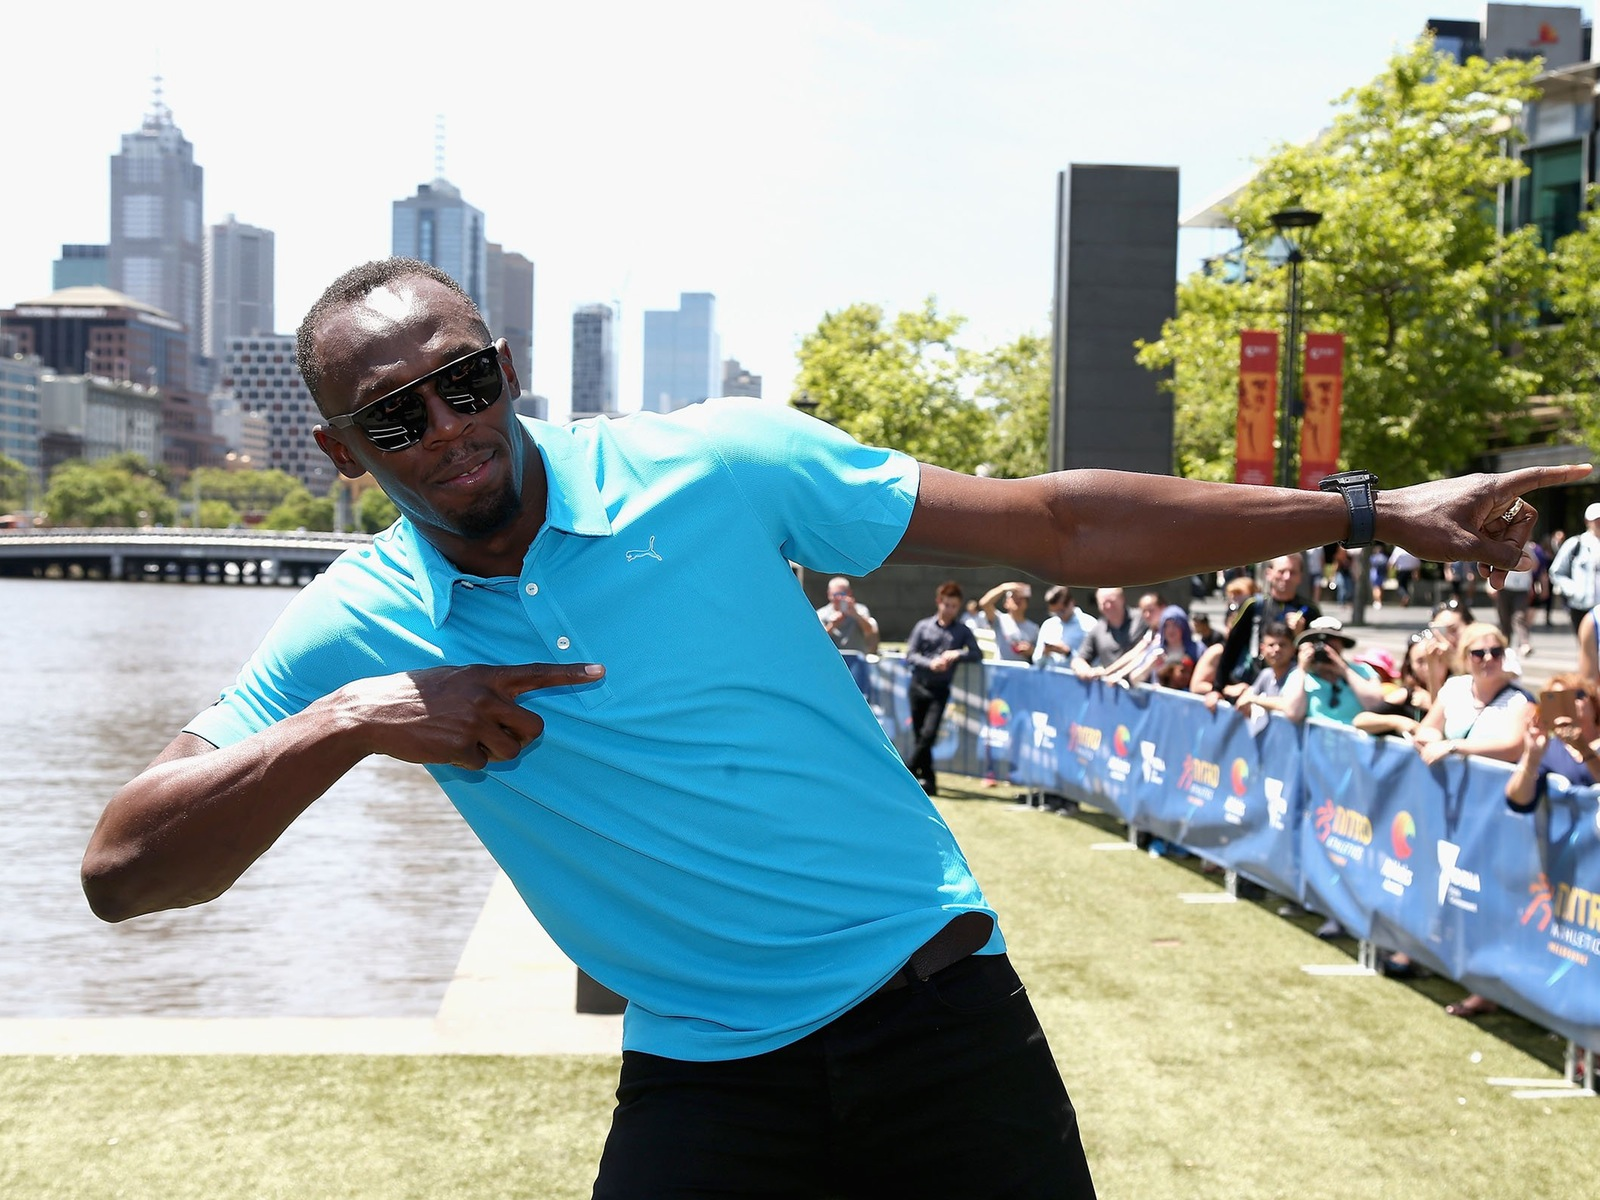 Usain Bolt brings the lightning to the Nitro Athletics Launch